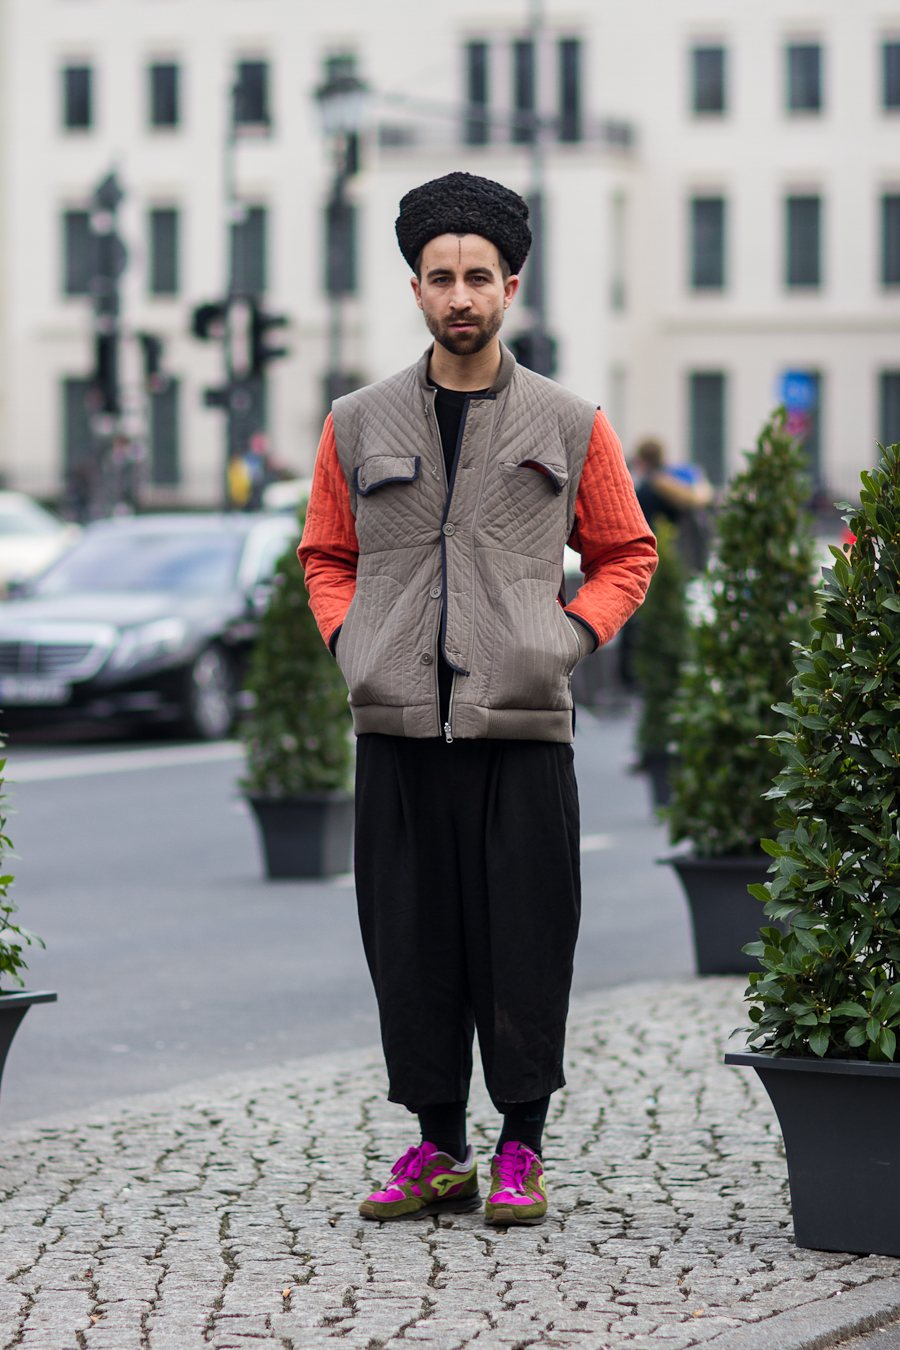 street-style-fashion-blog-innsbruck-berlin-fashion-week-david-dandy-diary